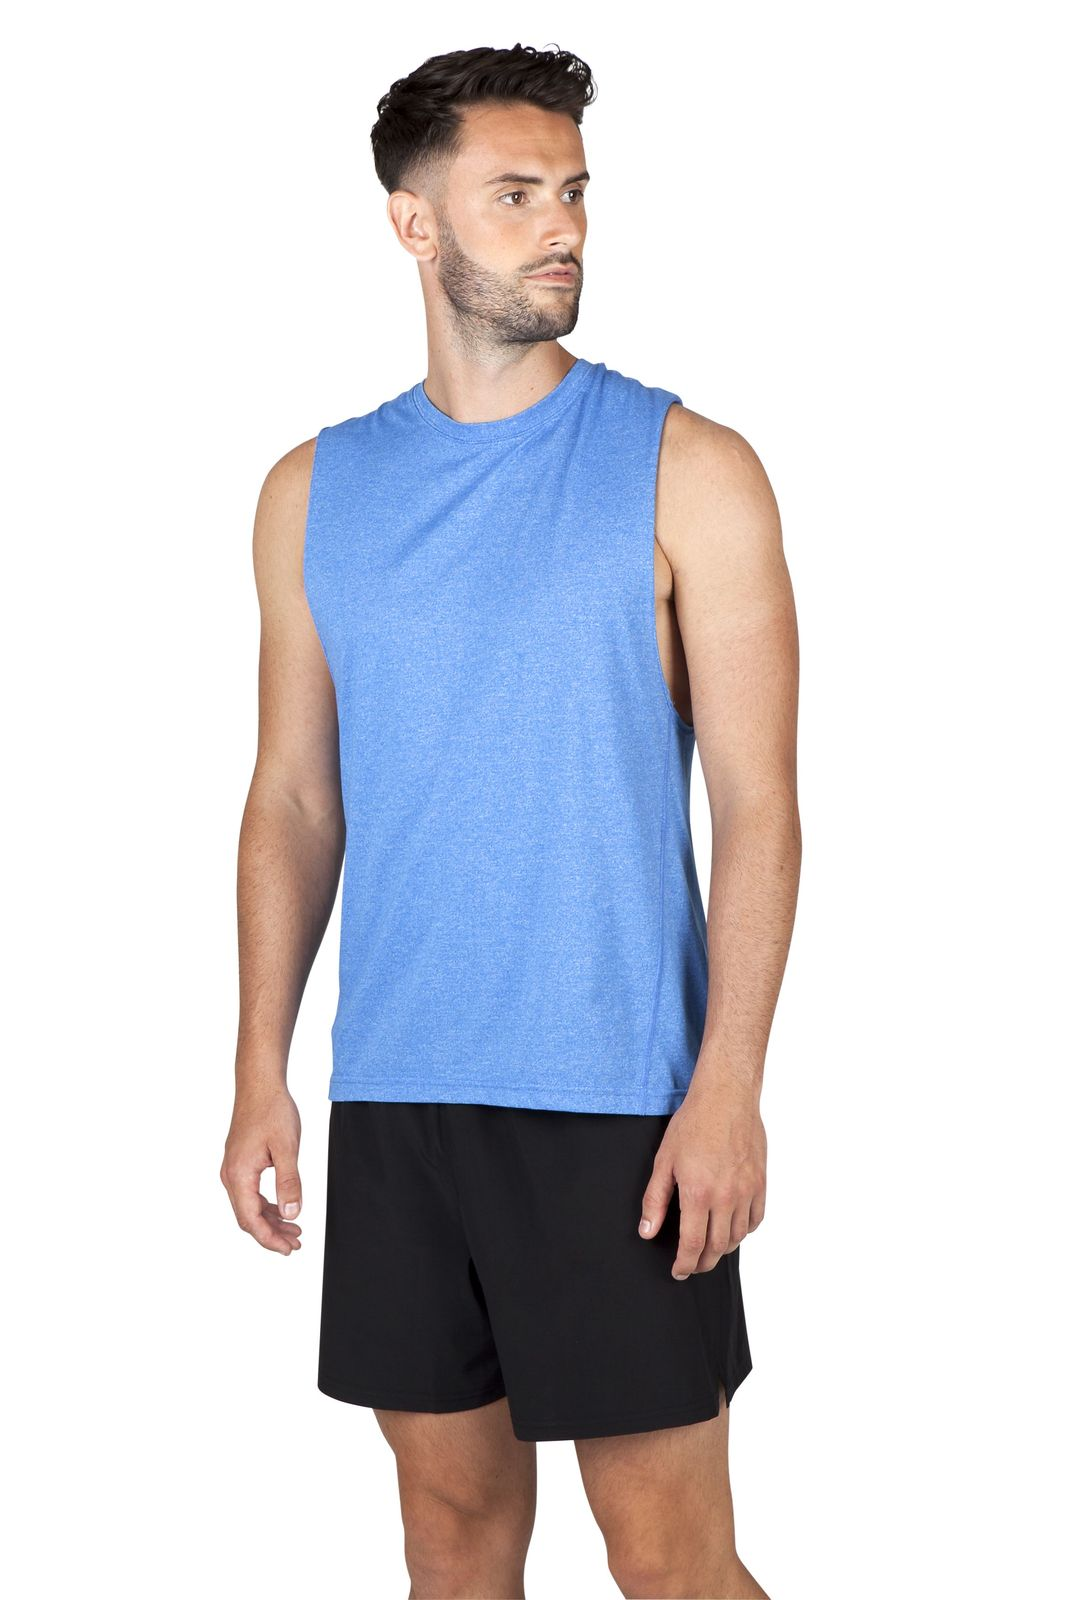 Mens Heather SLEEVELESS Tee - Greatness Range